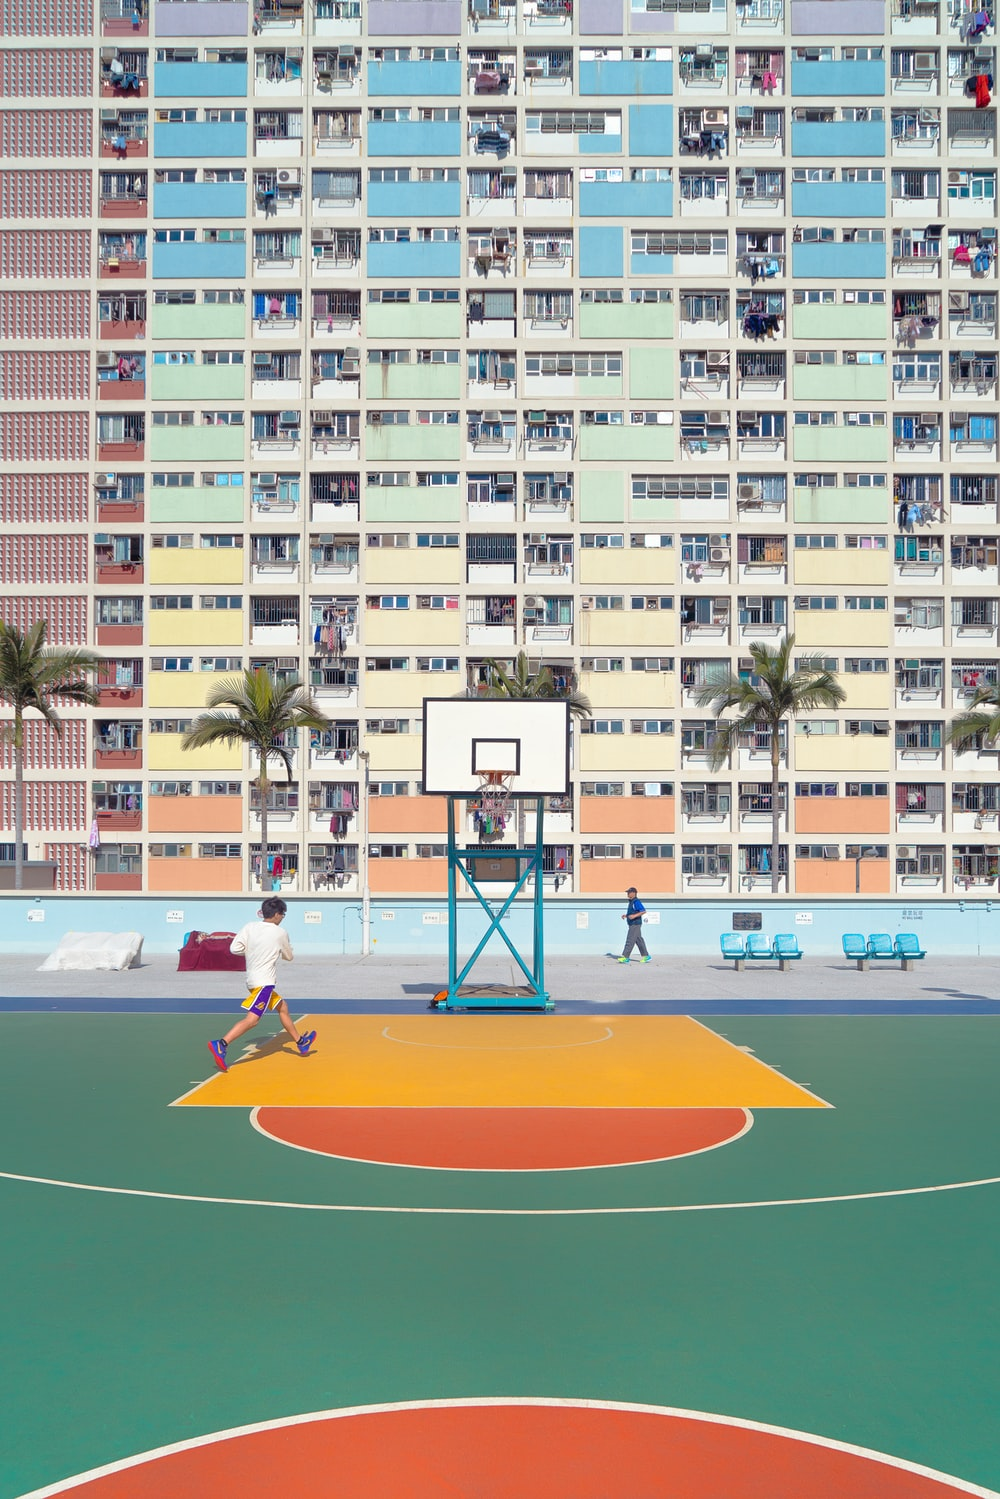 man running on basketball court during day time